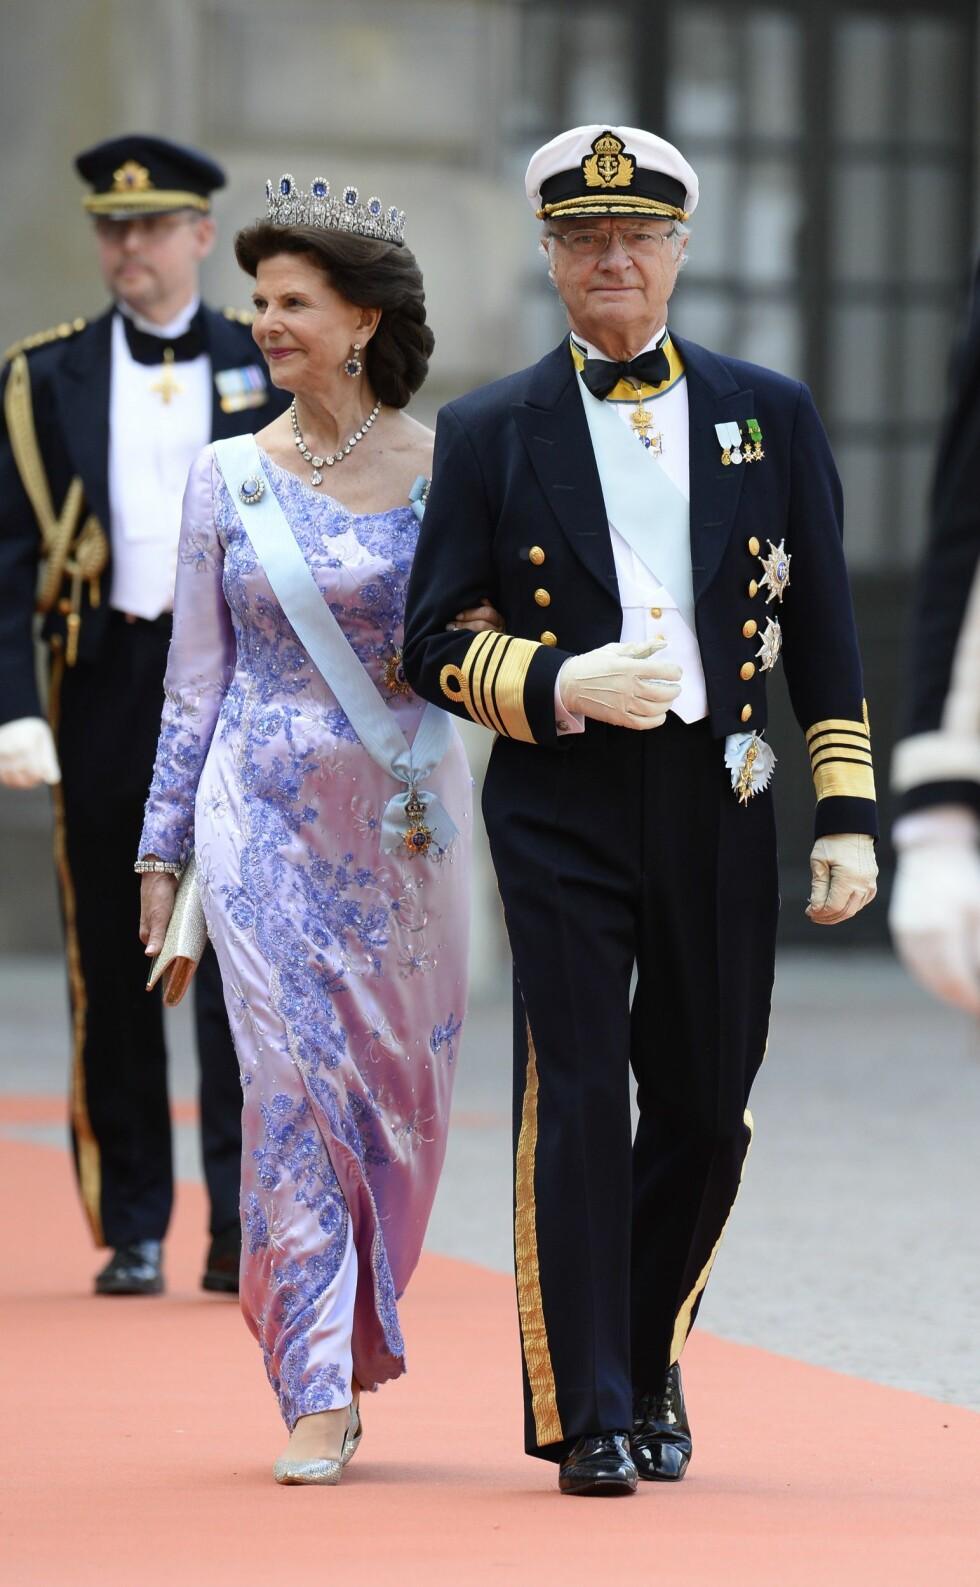 Sweden's King Carl XVI Gustaf (R) and Sweden's Queen Silvia arrive for the wedding of Sweden's Crown Prince Carl Philip and Sofia Hellqvist at Stockholm Palace on June 13, 2015. AFP PHOTO / JONATHAN NACKSTRAND Foto: Afp